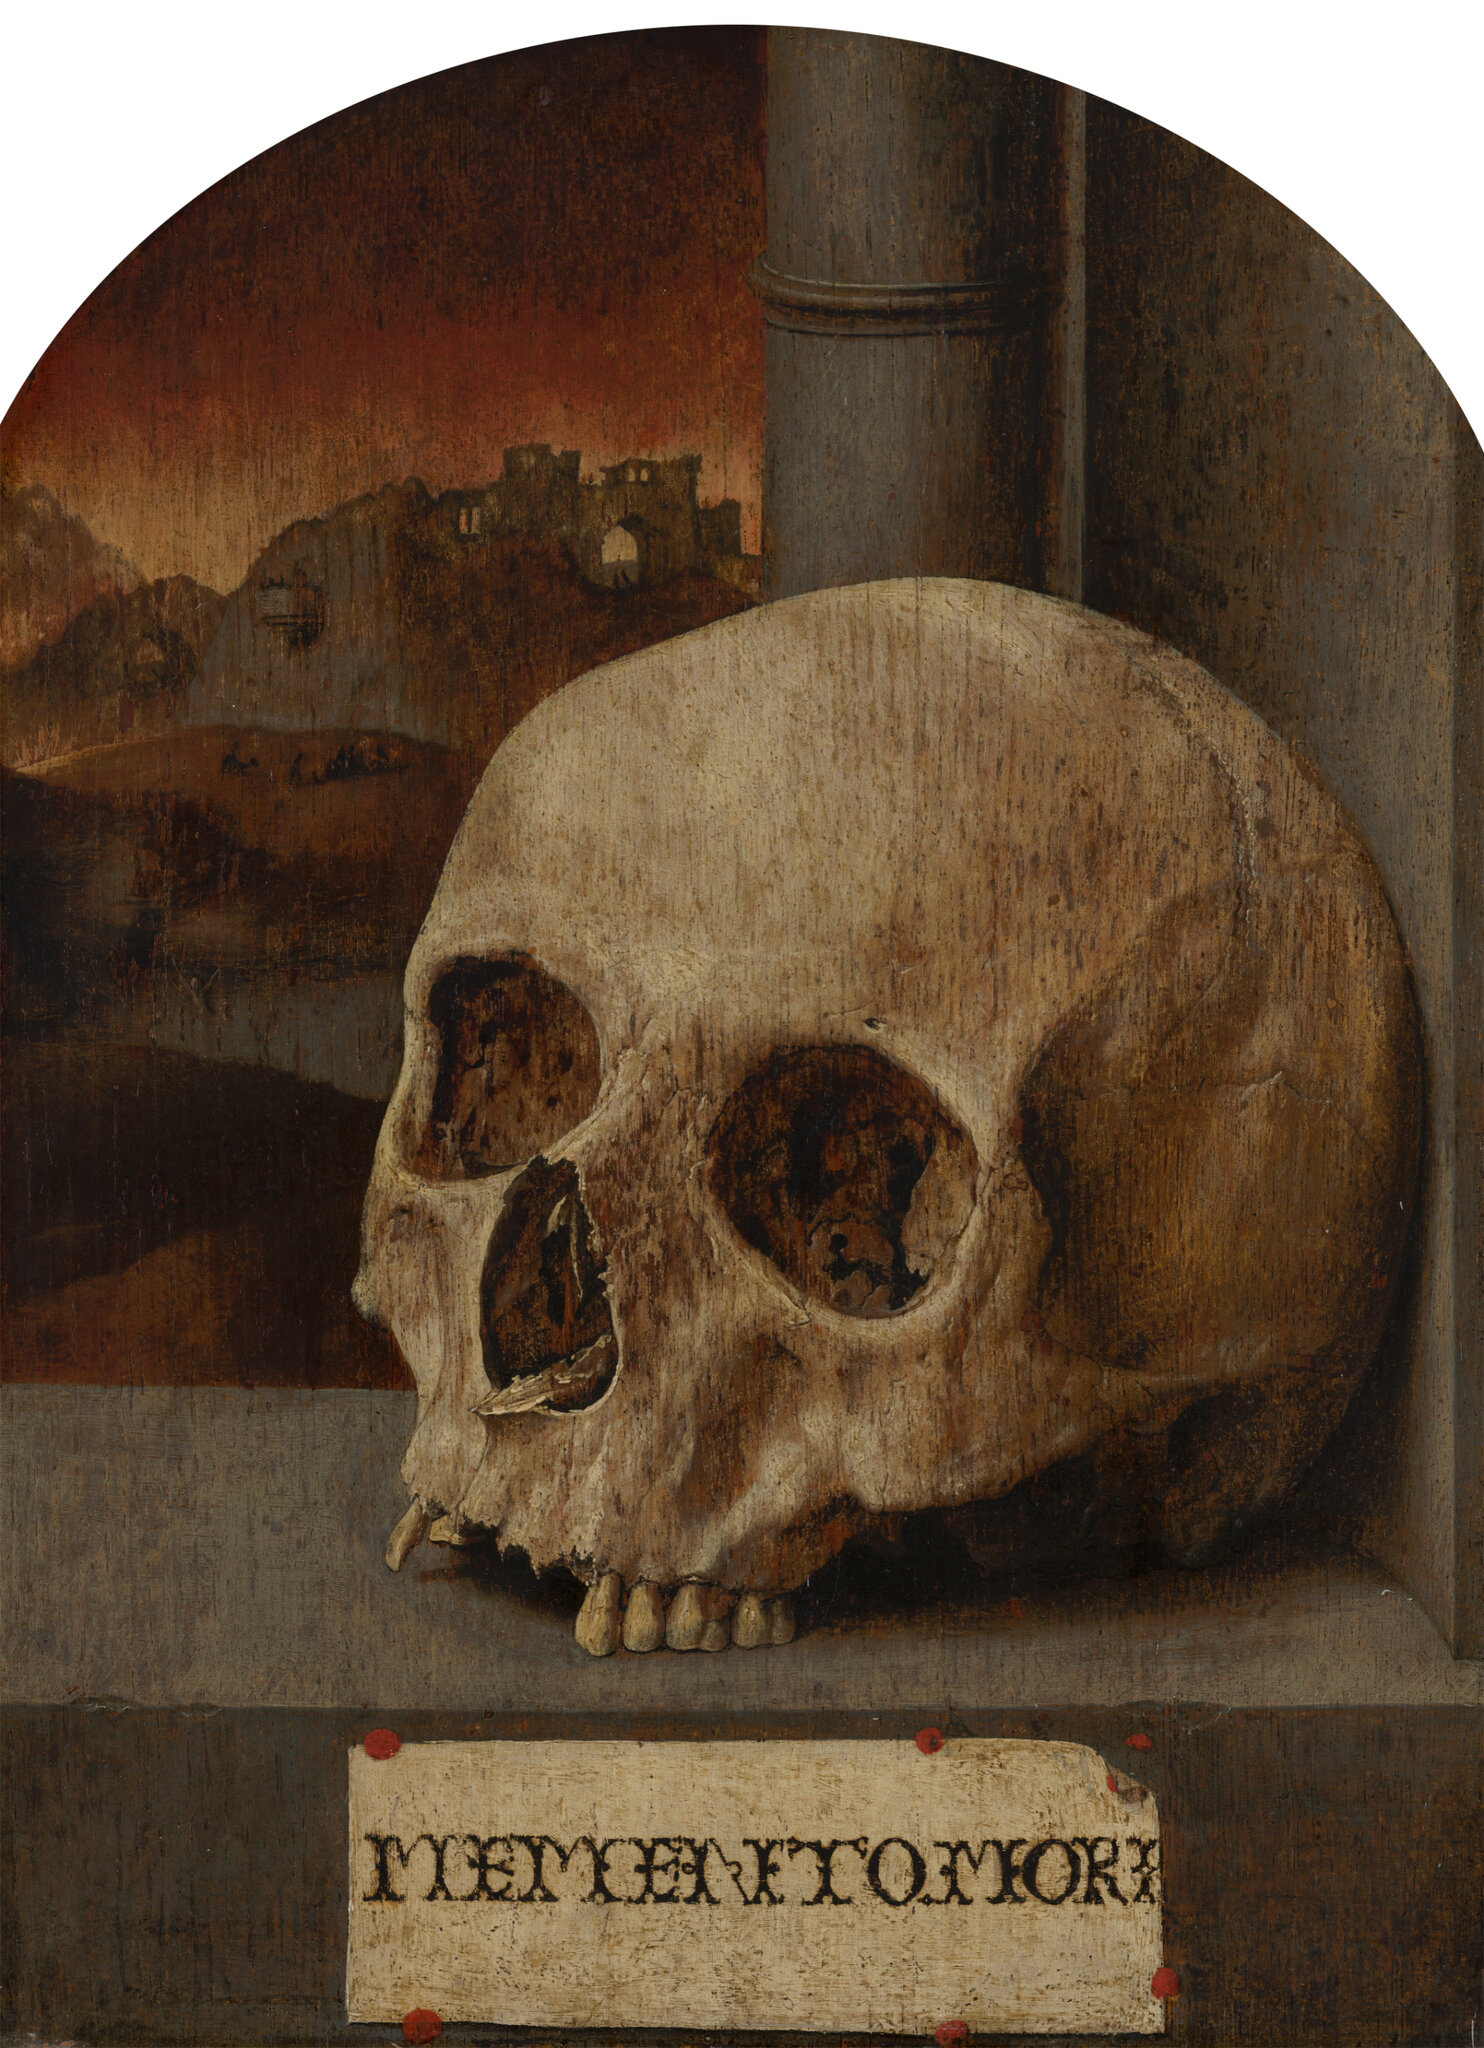 Anonymous (Southern Netherlands), Vanitas Still Life, c. 1530, oil on panel, 34.2 x 26 cm. © 2019 Mauritshuis